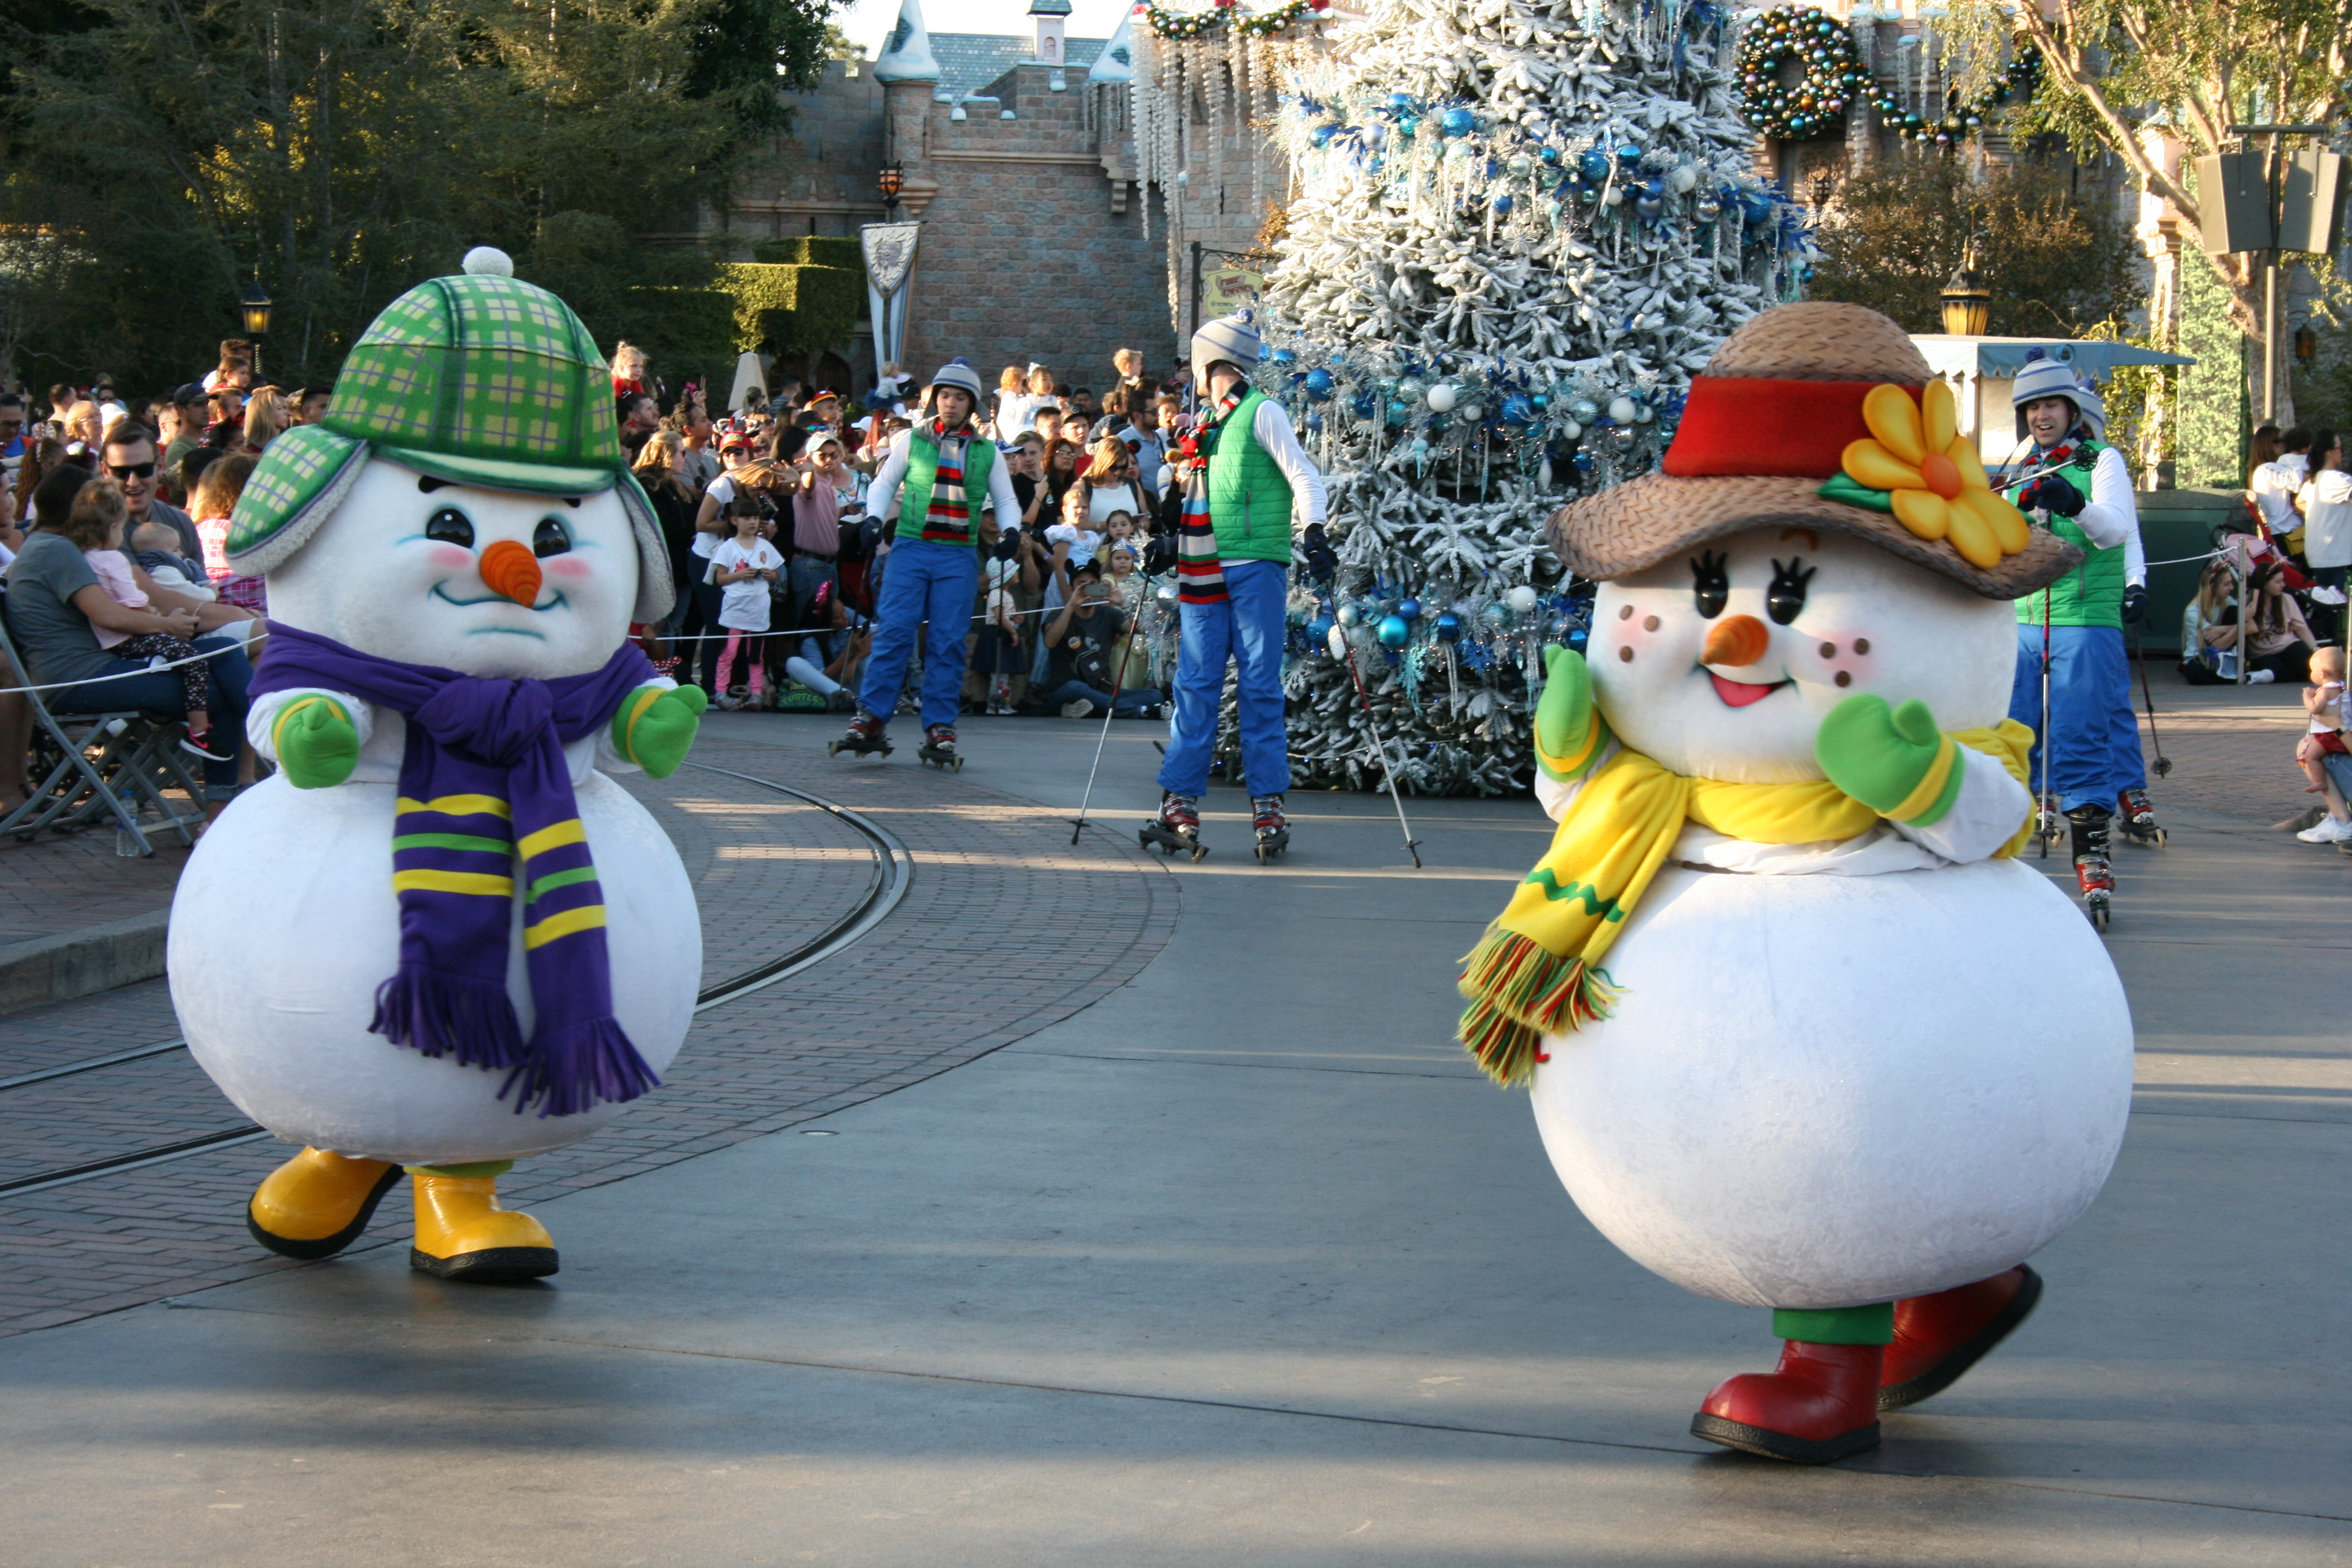 Snowmen dancing in the Disneyland Christmas Fantasy holiday parade